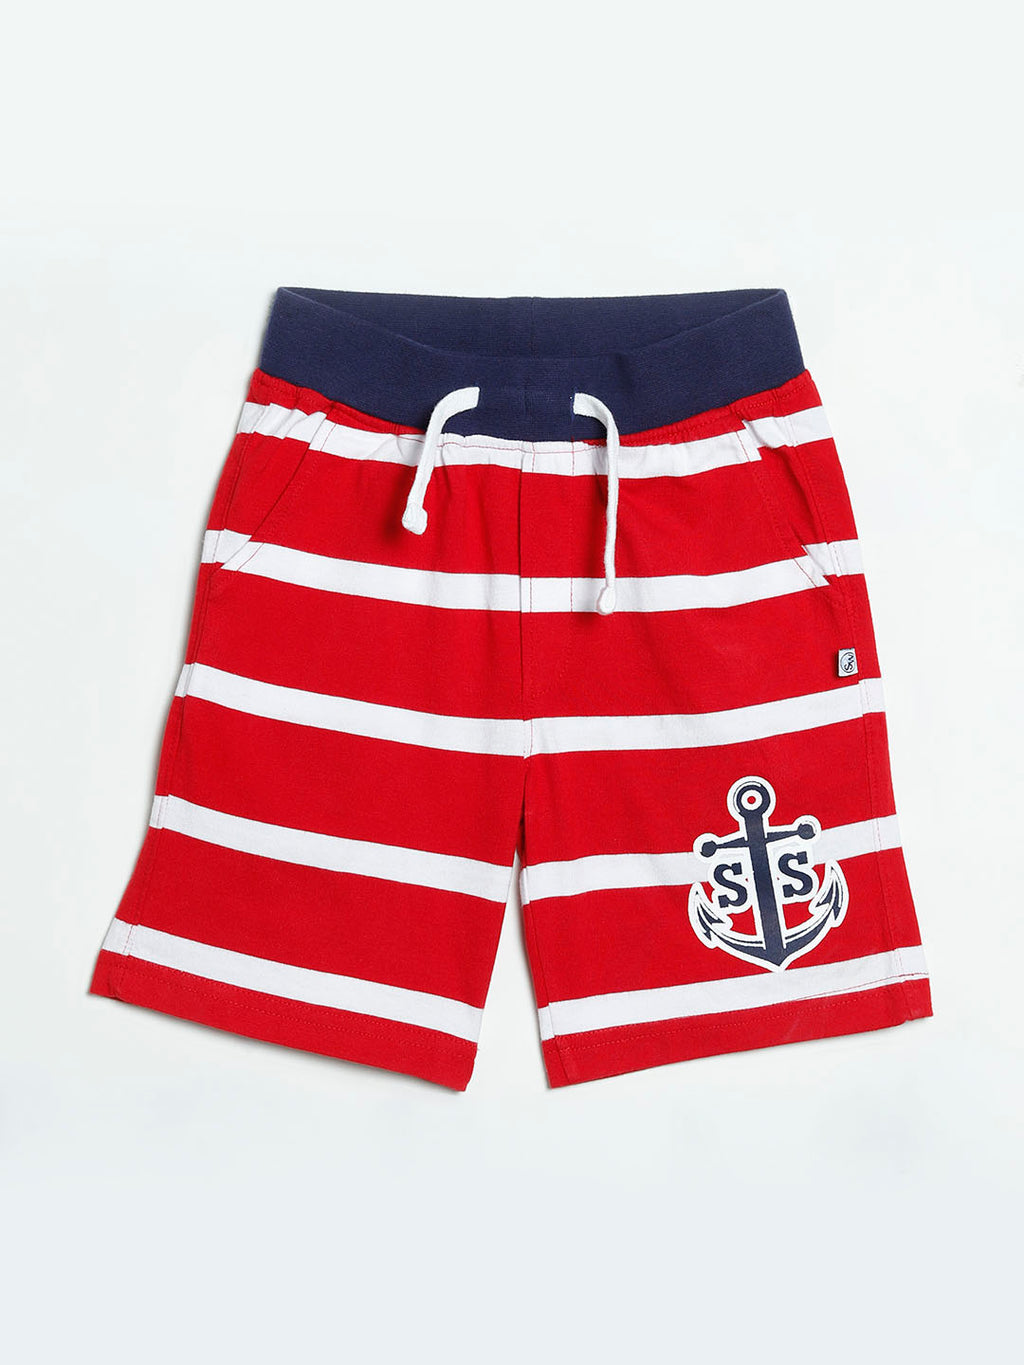 Striped Jersey Shorts with anchor